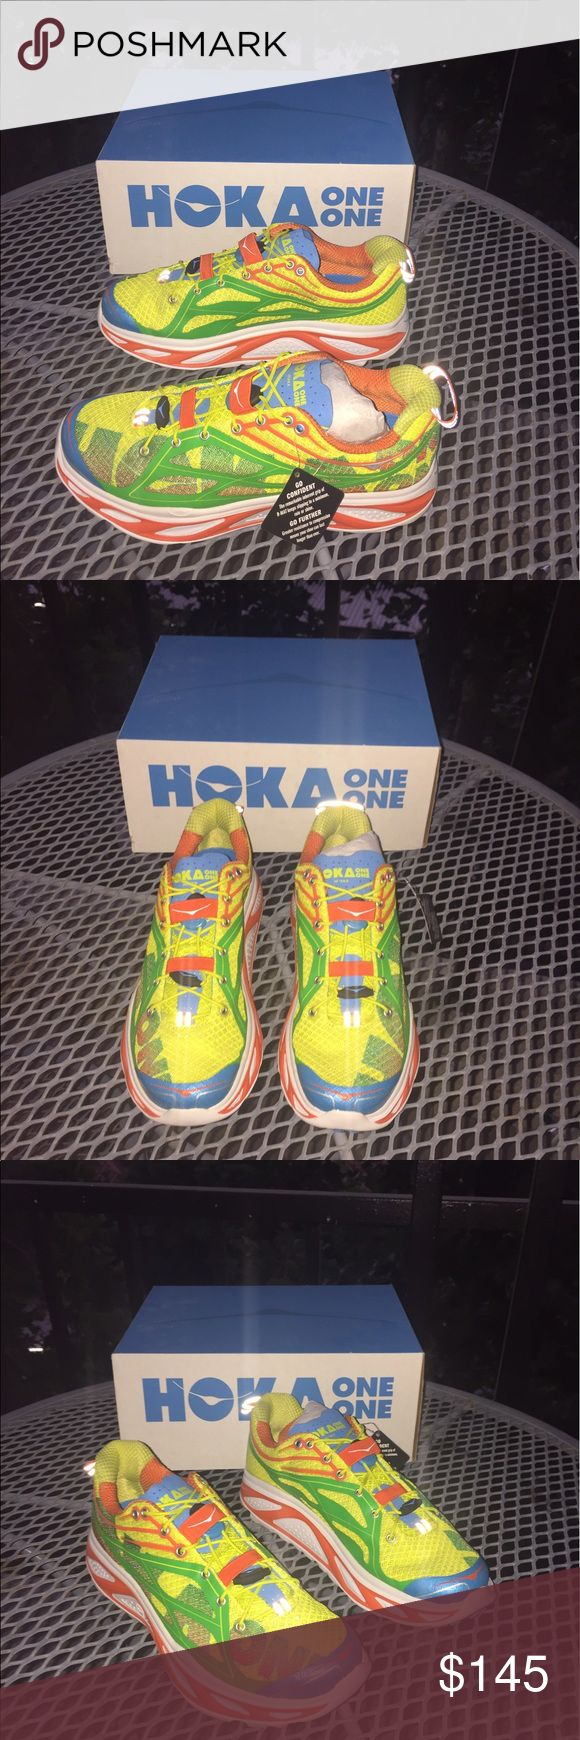 NWB Hoka One cushioned running shoe Mild stability shoe provides extra cushioning for added support perfect for long distance runners ever worn Men's size 7 or women's size 9 comes with an extra pair of insoles and laces Hoka One Shoes Athletic Shoes